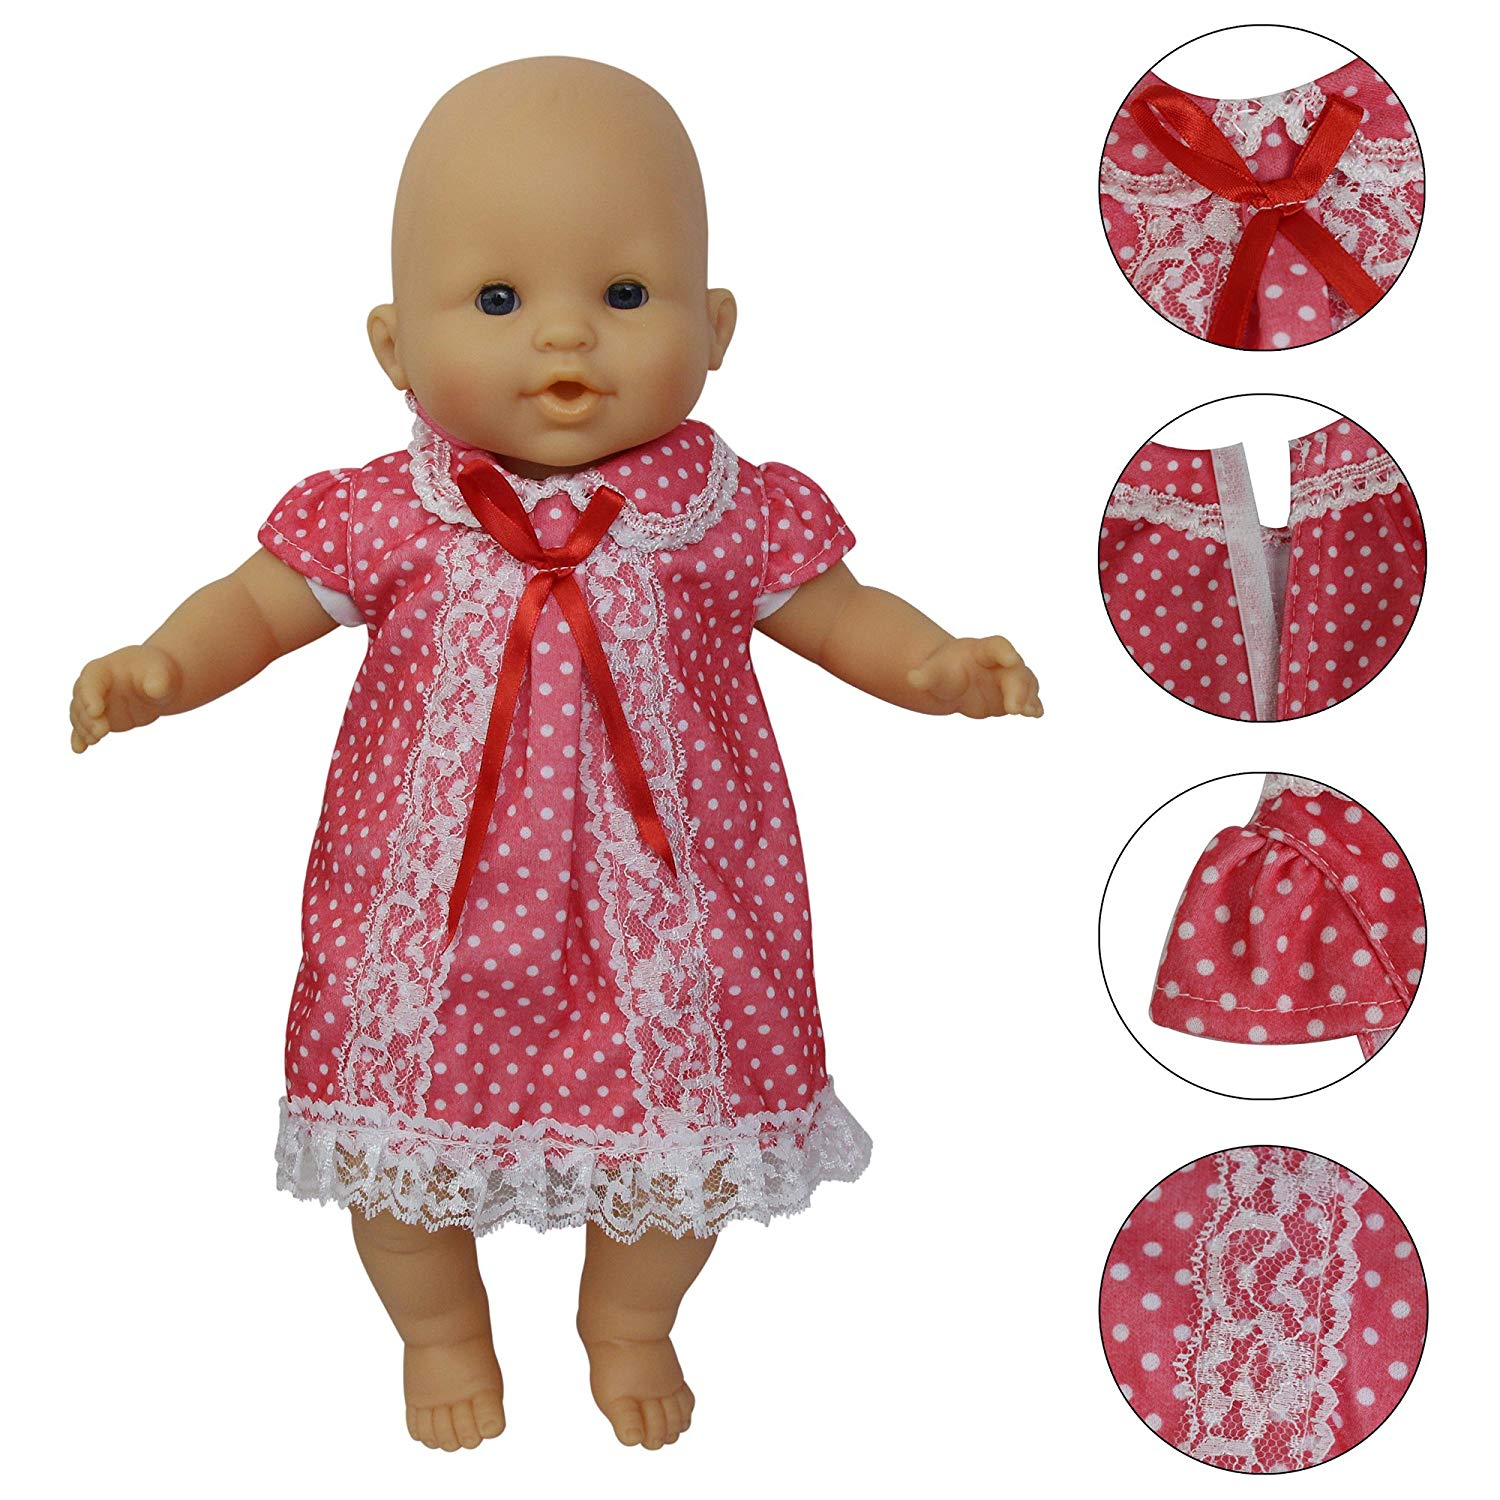 Lot 5 Set Baby Dress Cute Clothing Outfits for Alive America 18 inch Girl Doll